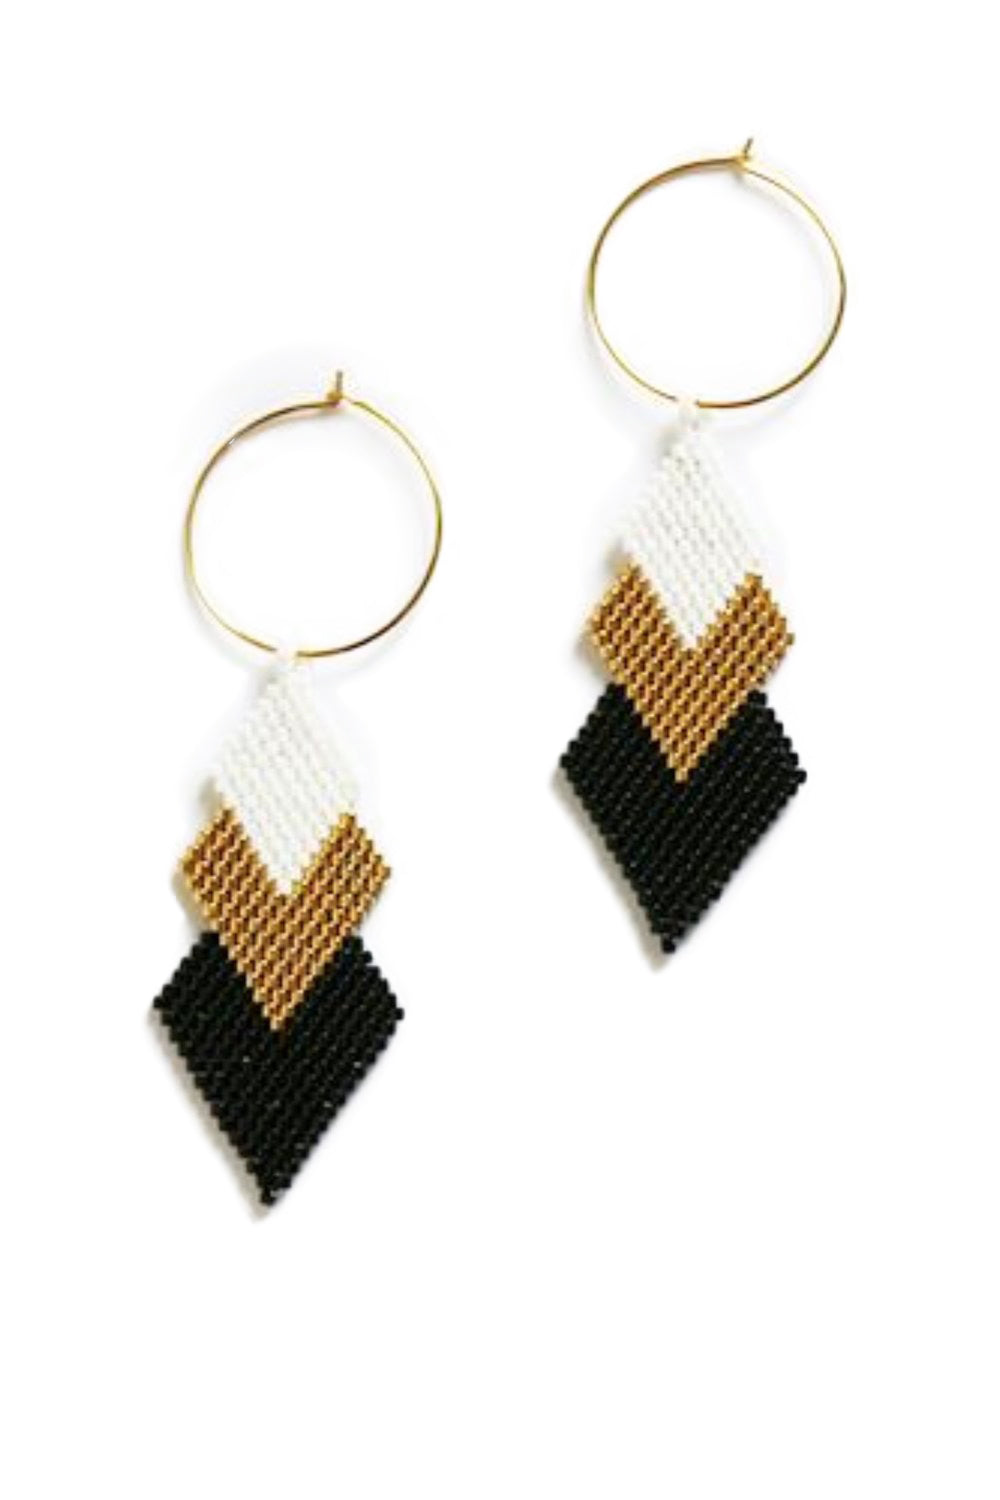 White & Gold & Black Earrings